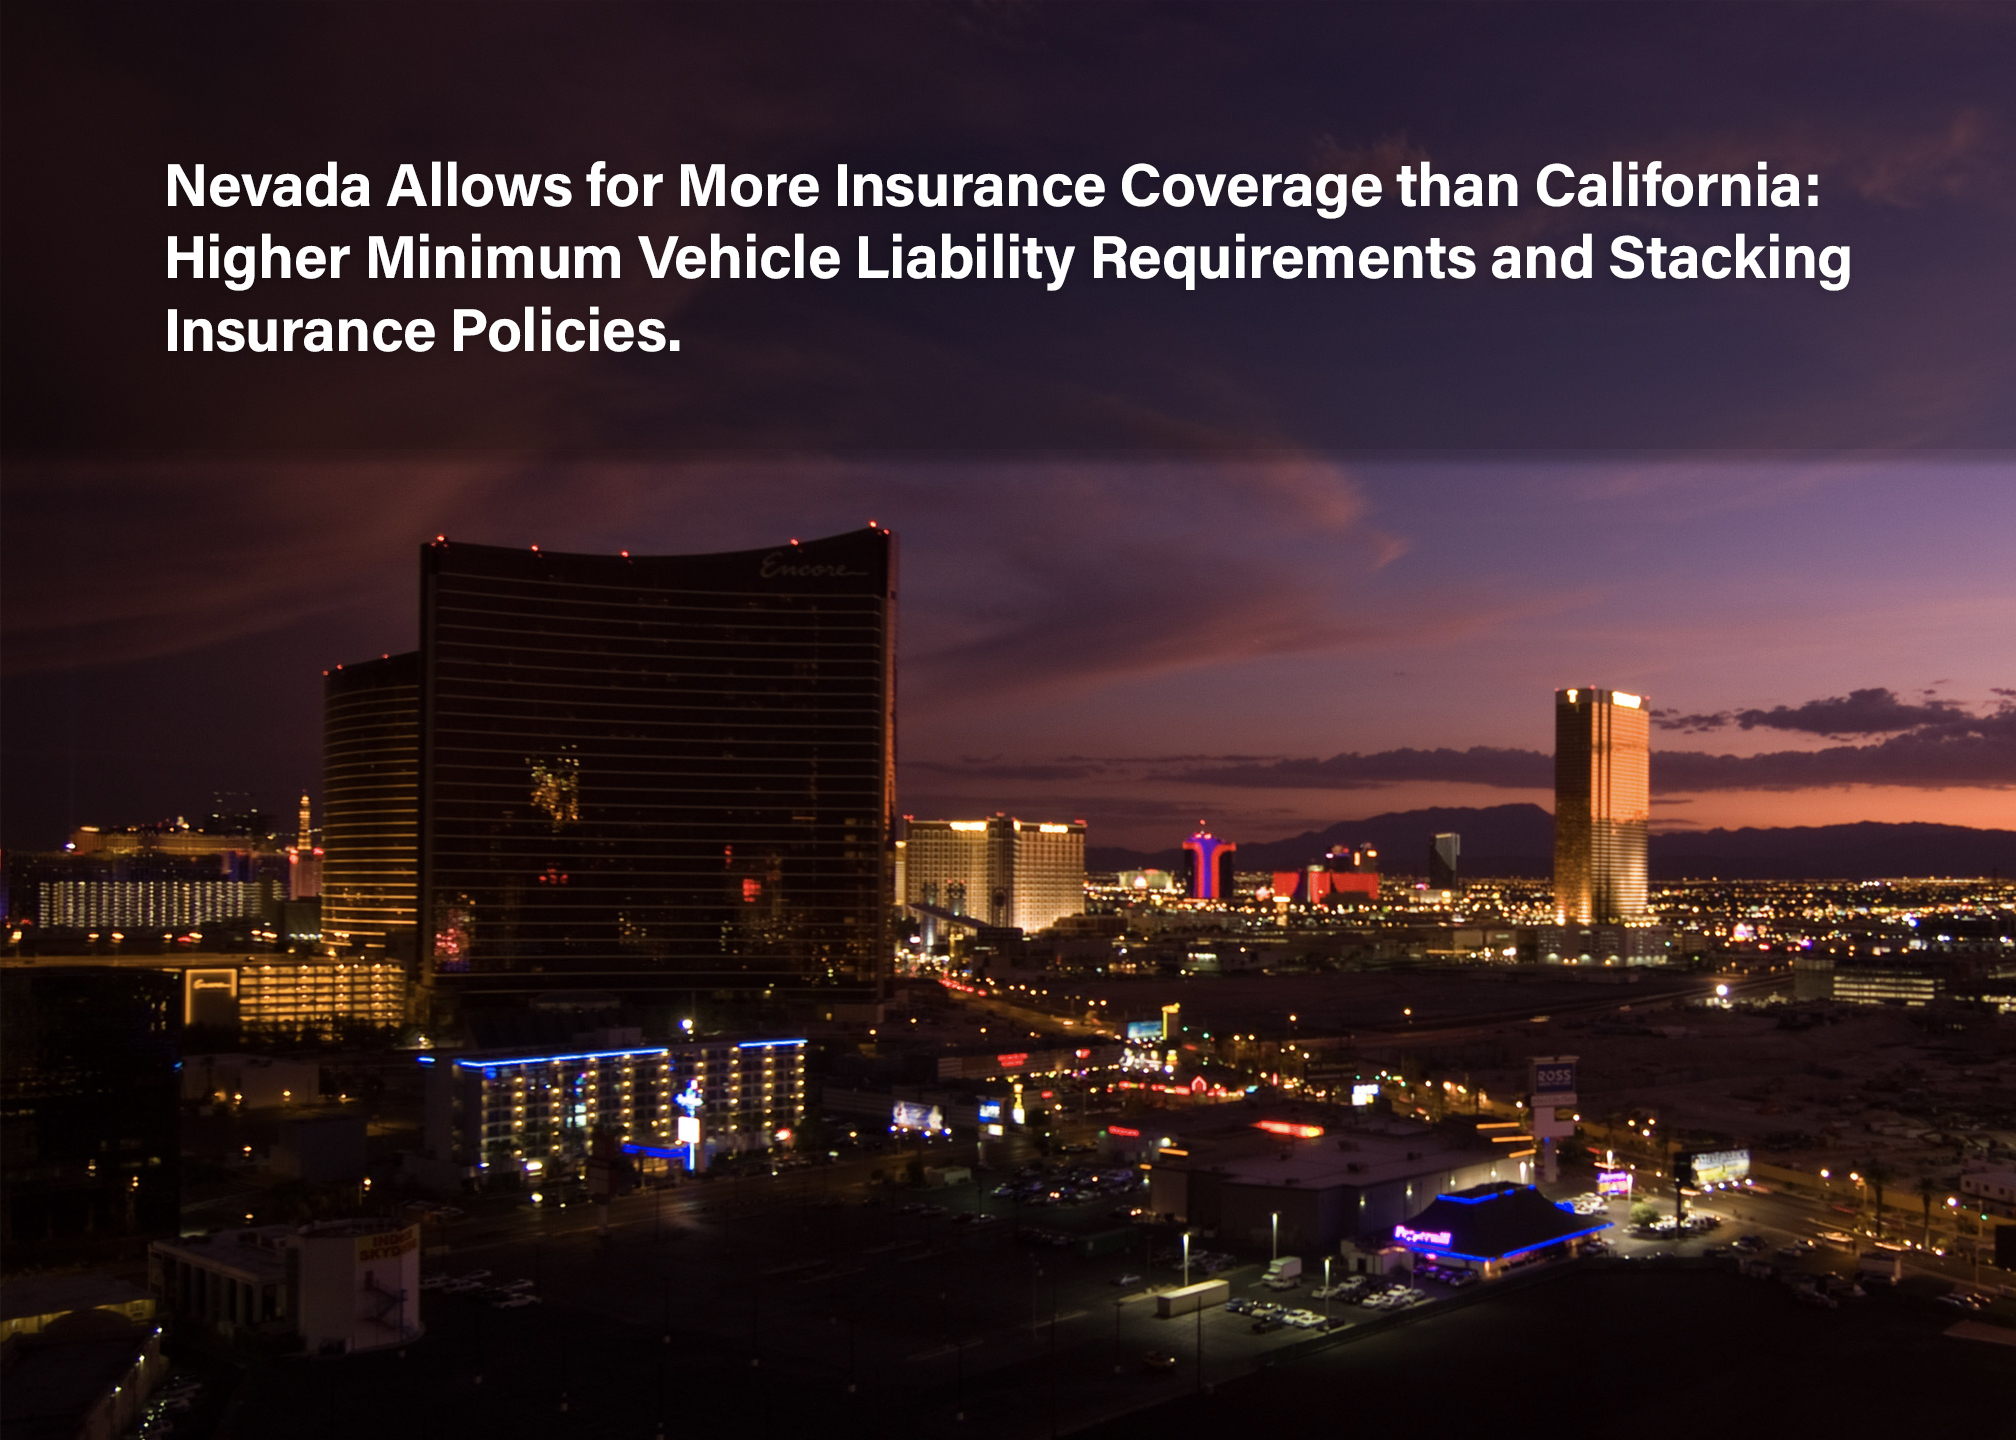 Nevada-Allows-for-More-Insurance-Coverage-than-California